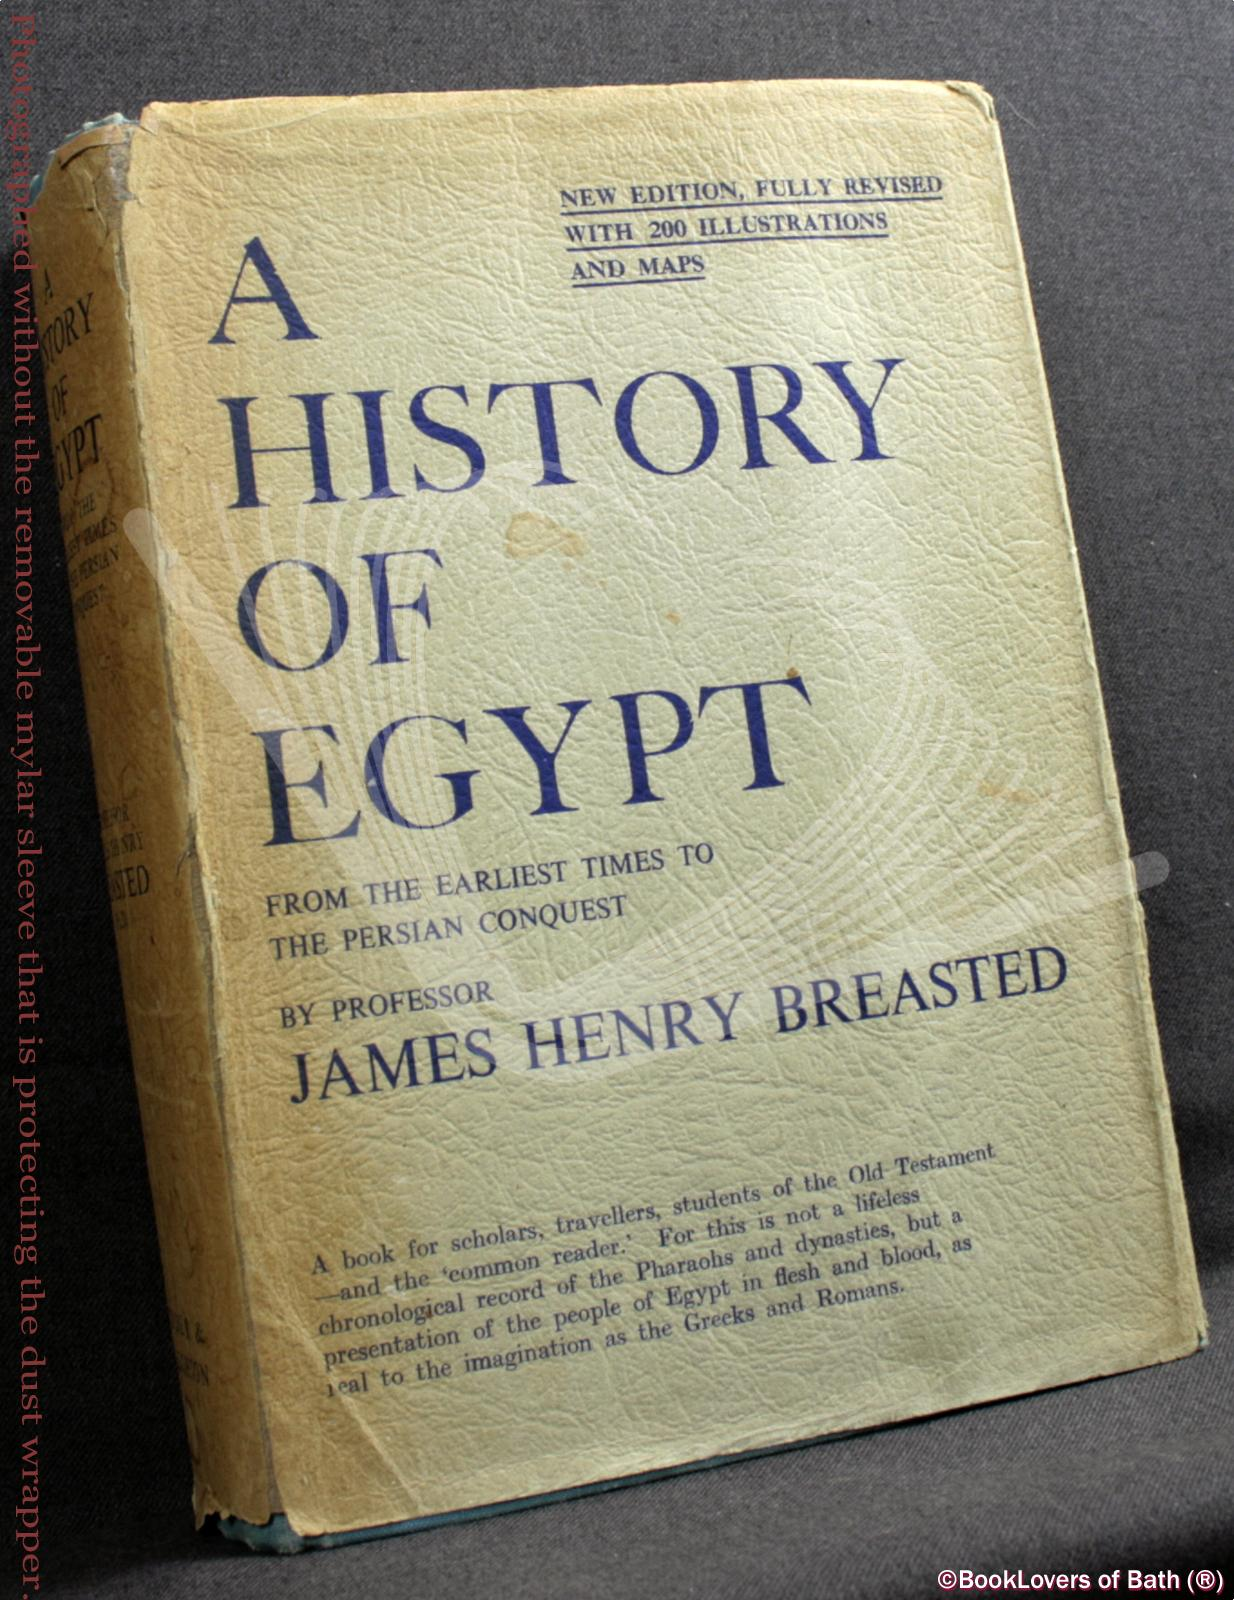 A History of Egypt: From the Earliest Times to the Persian Conquest - James Henry Breasted